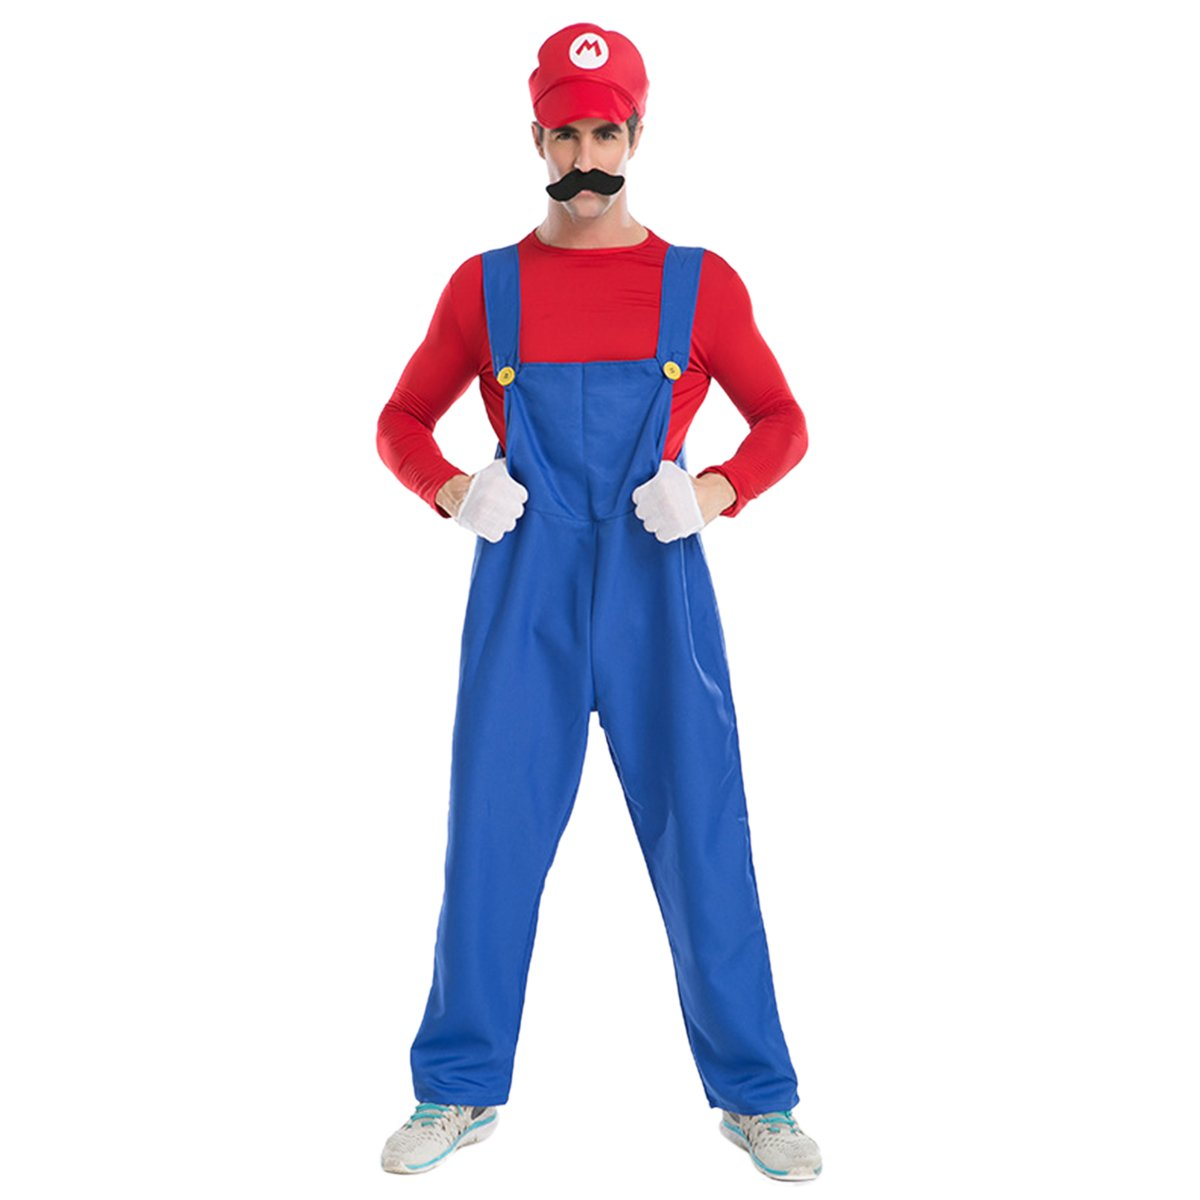 Quesera Men's Super Mario Costume Adult Cosplay Costume Mario Brothers Halloween Costume